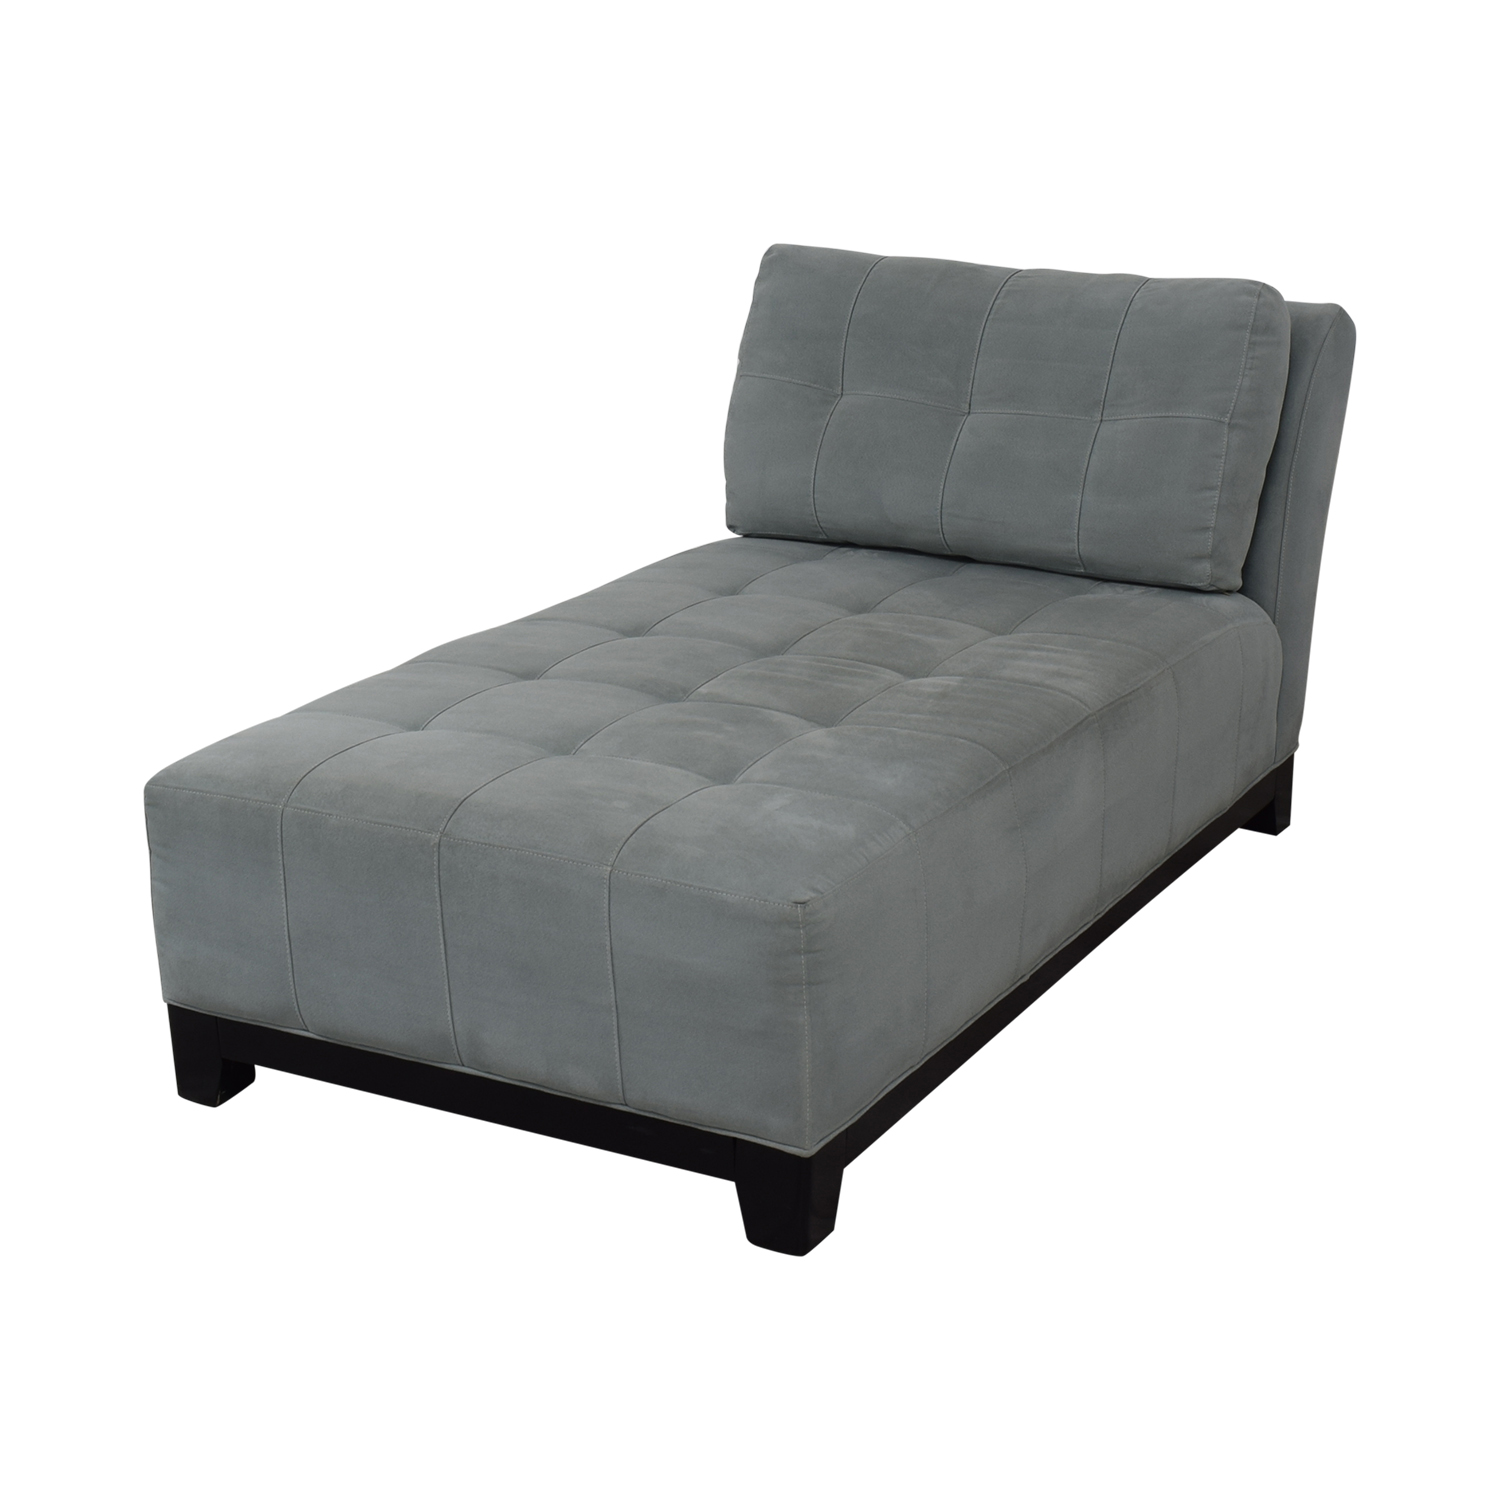 HM Richards Furniture HM Richards Furniture Chaise Lounge nj